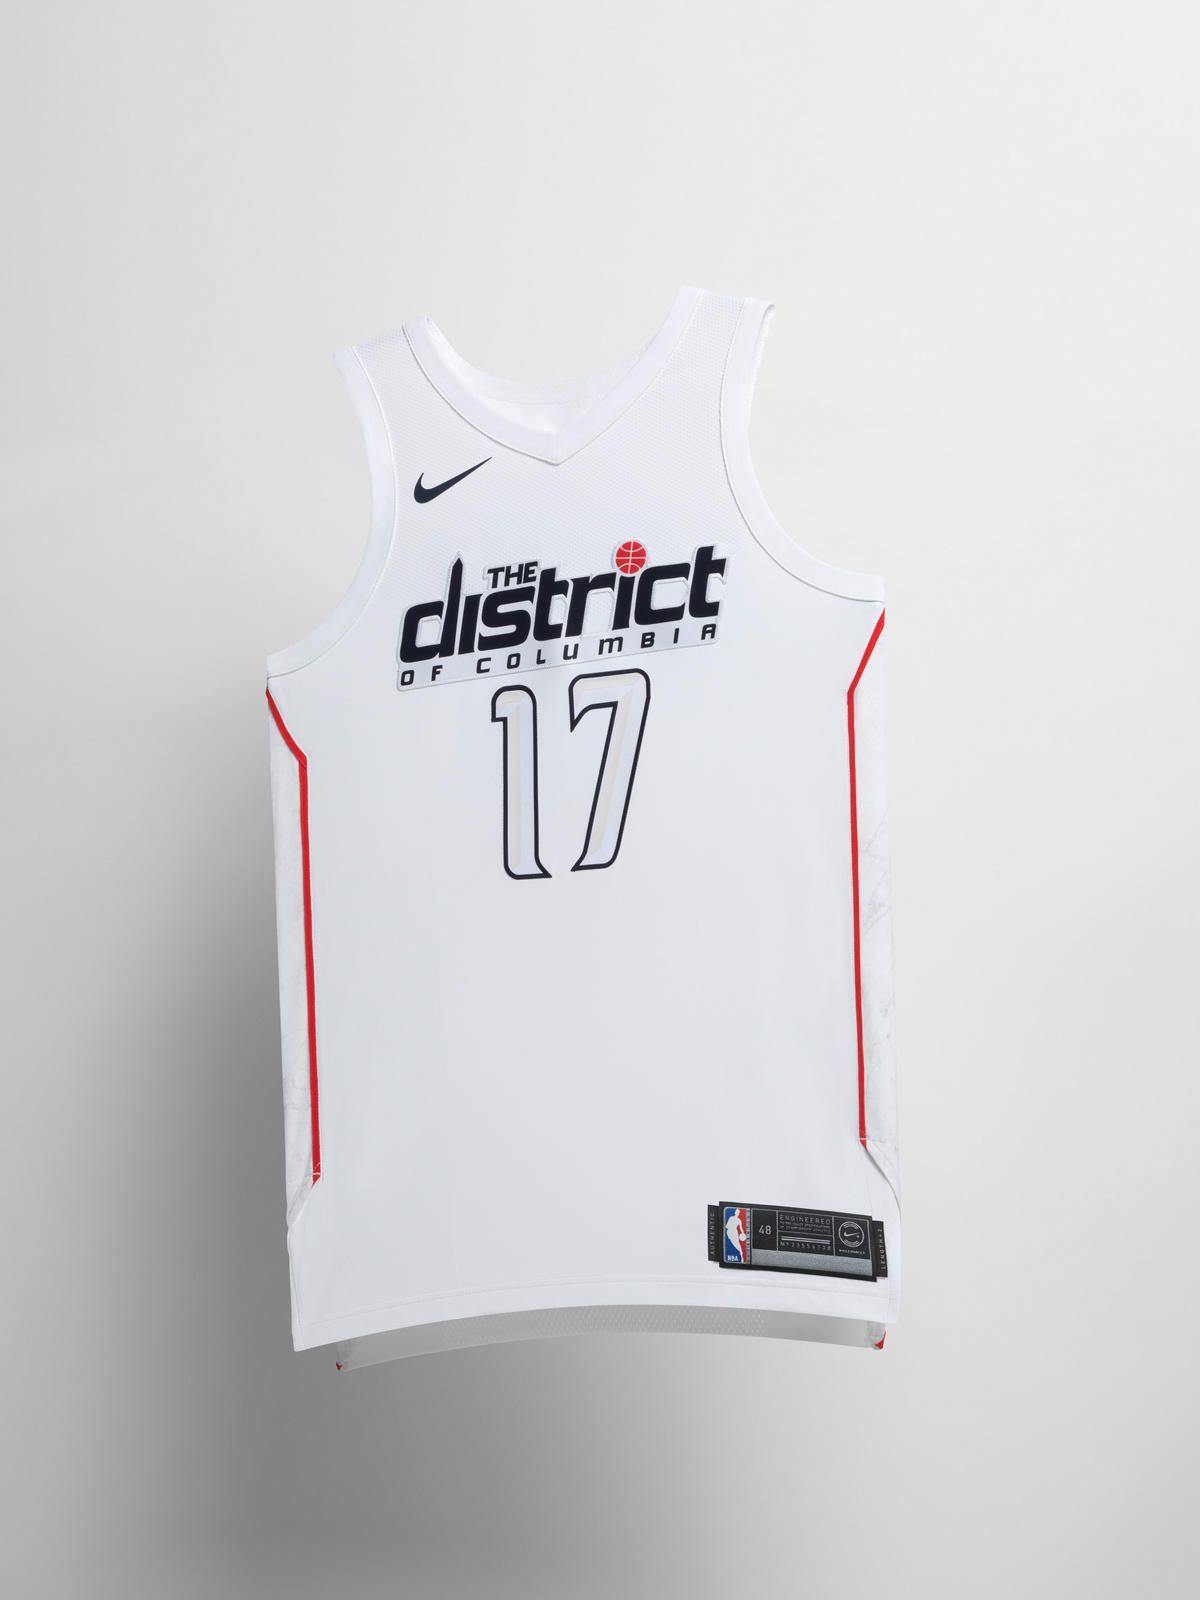 Here is the Wizards  The District  City Edition uniform - Bullets ... f4db60a51